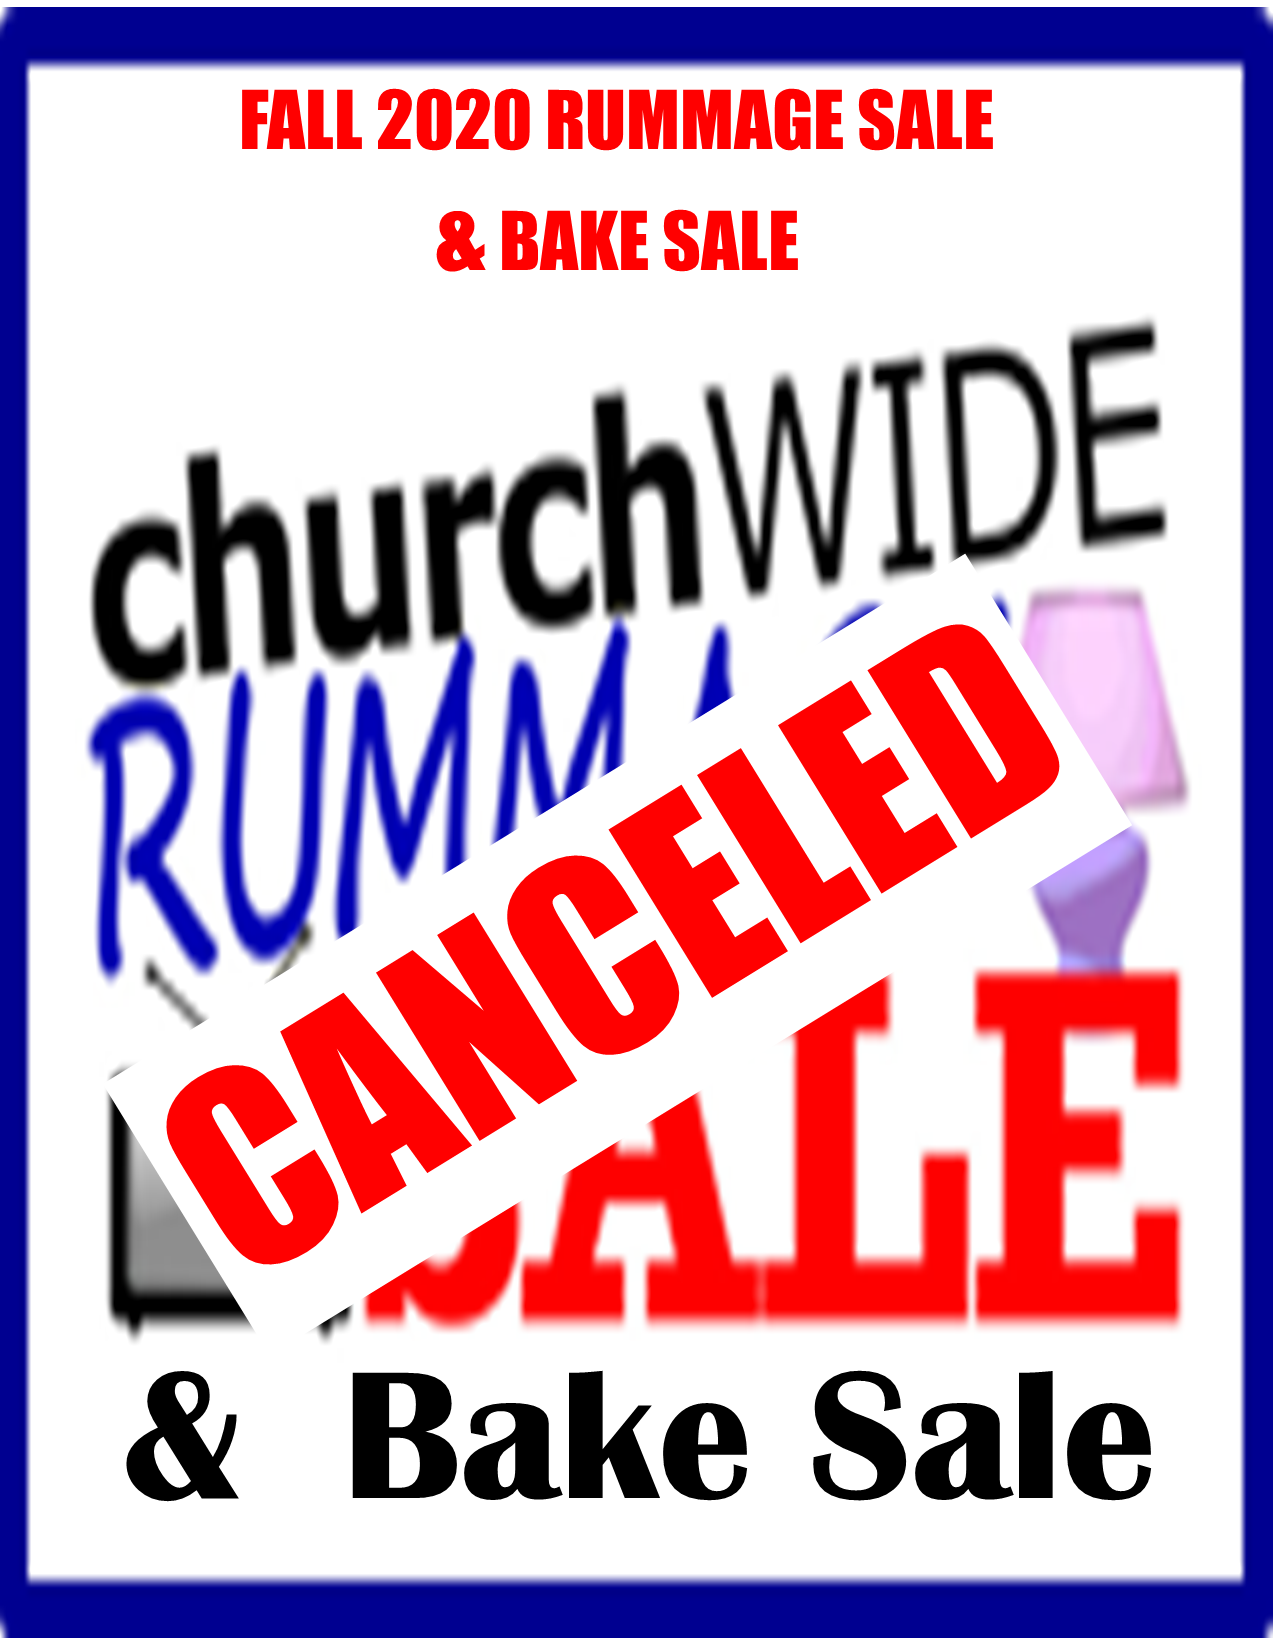 RummageSale2020FallCanceled.png